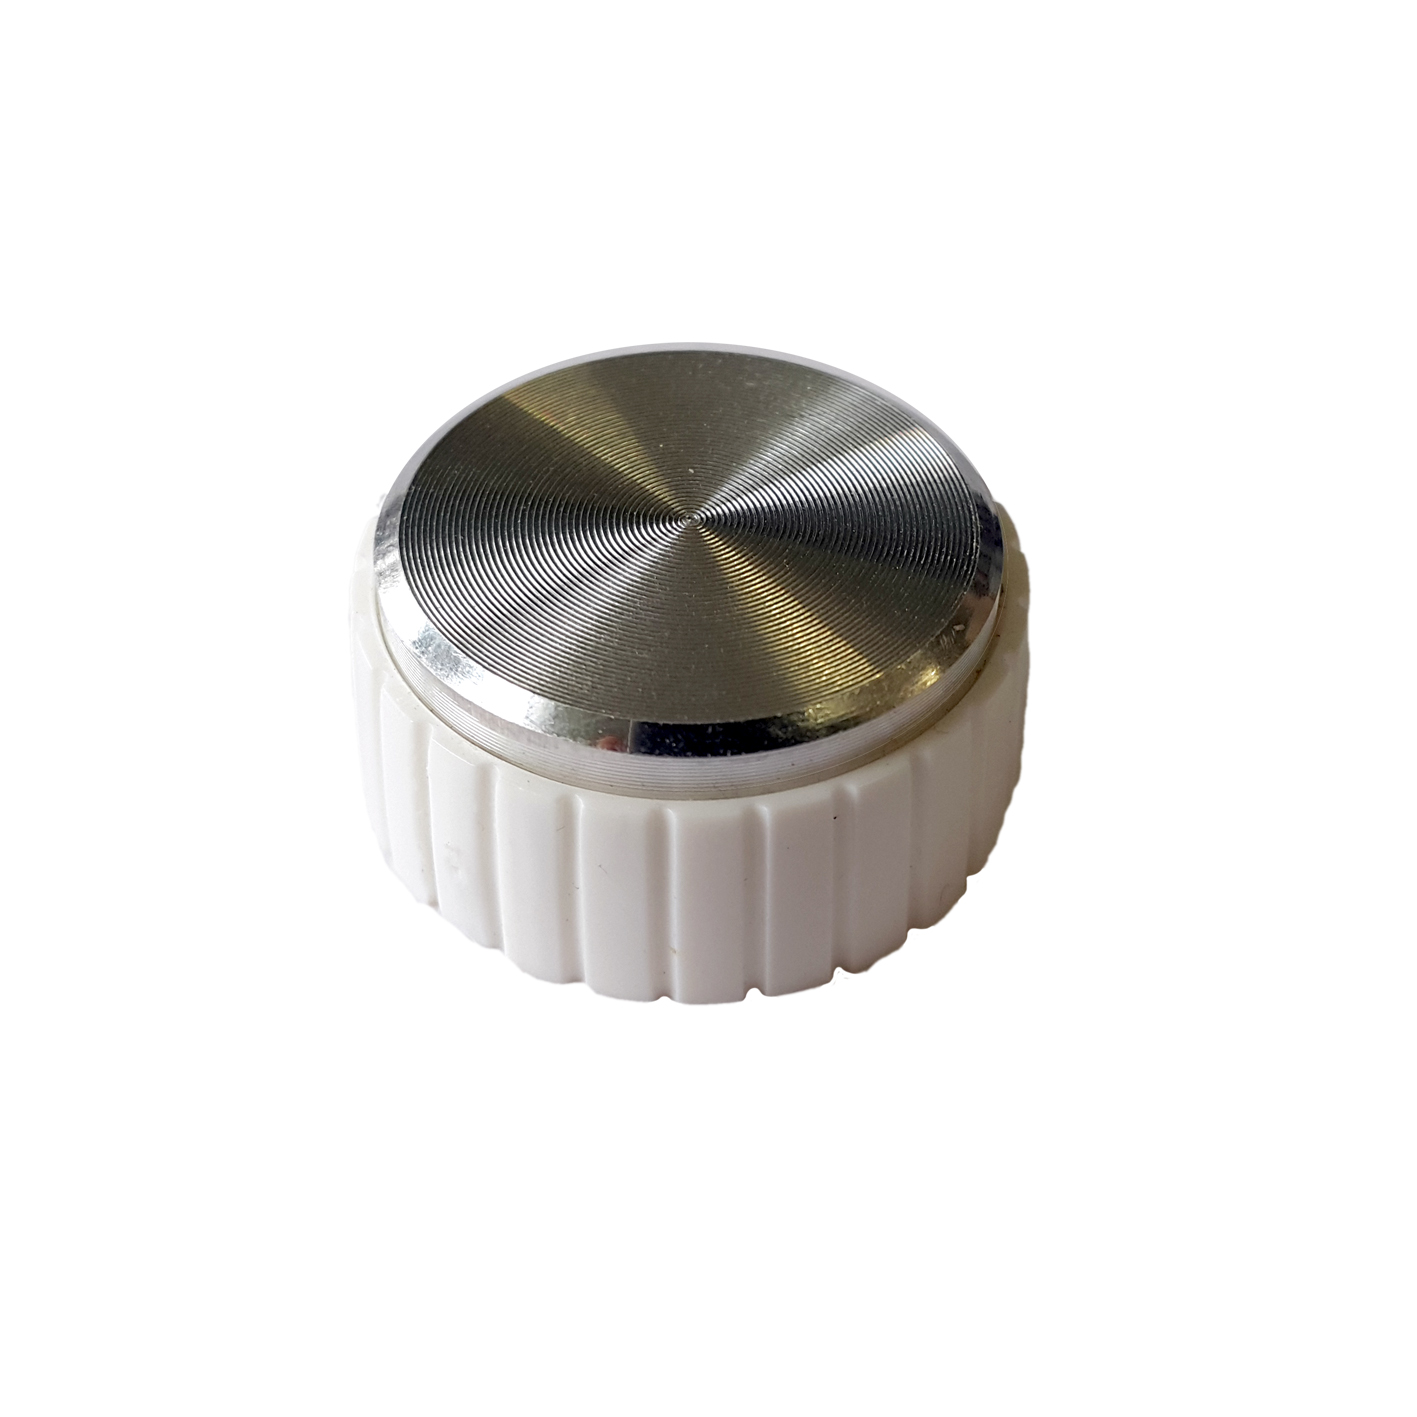 K6 Varilight White Retro Knob Fits on Dimmers of any plate finish